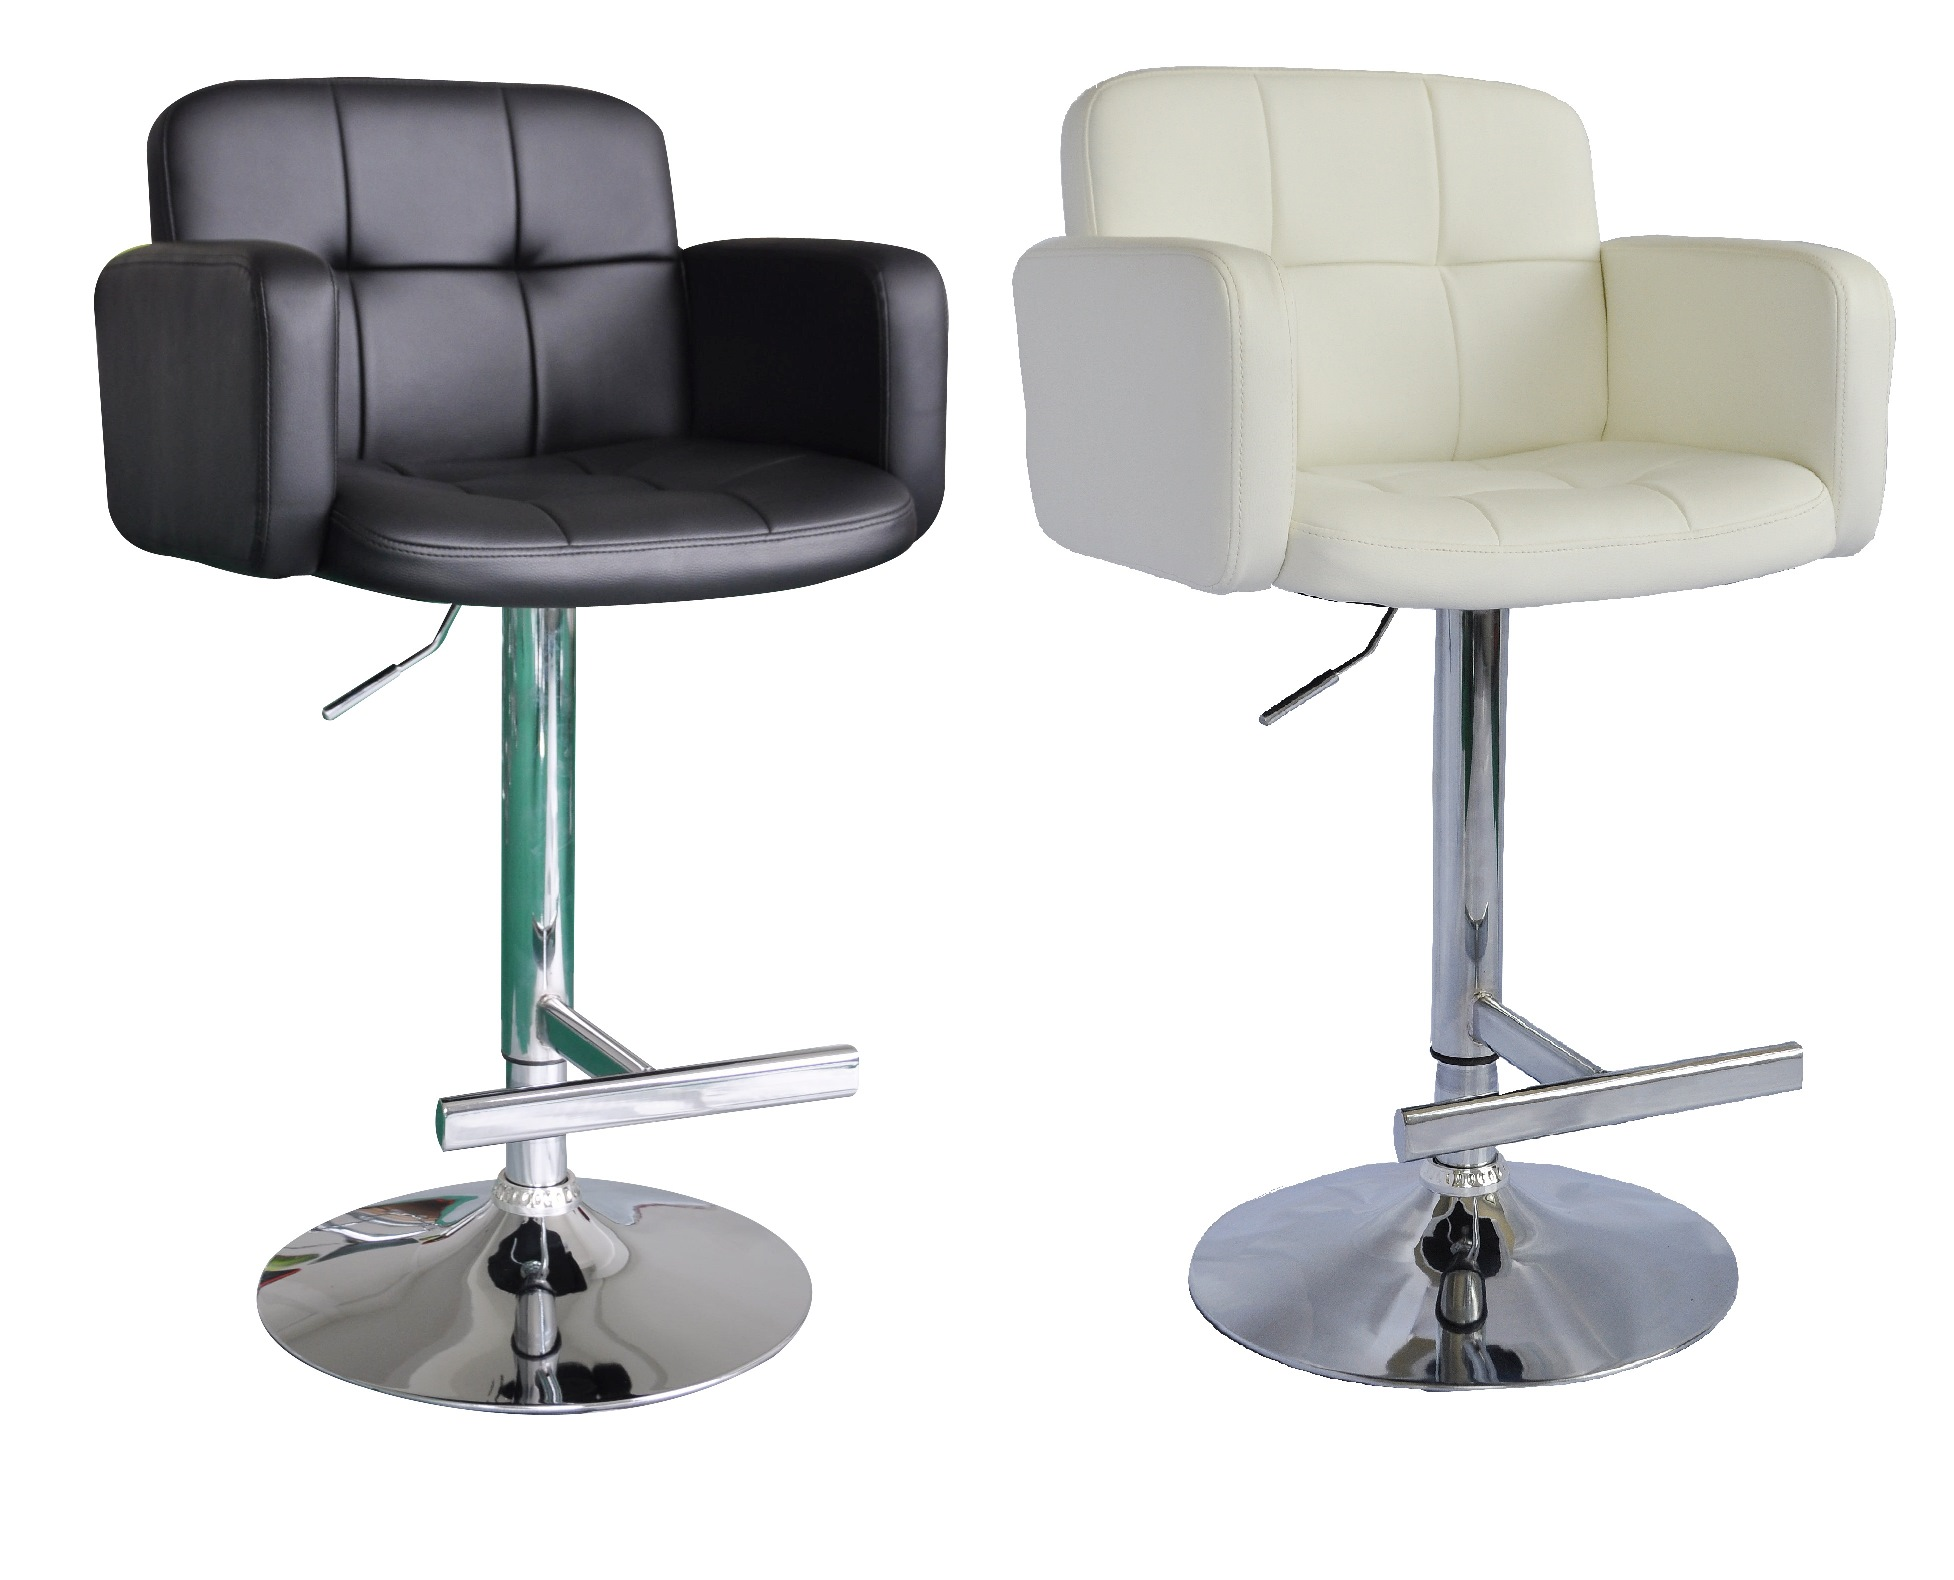 A Pair Of Style Swivel Pu Leather Breakfast Kitchen Bar Stools Pub Barstools Ebay